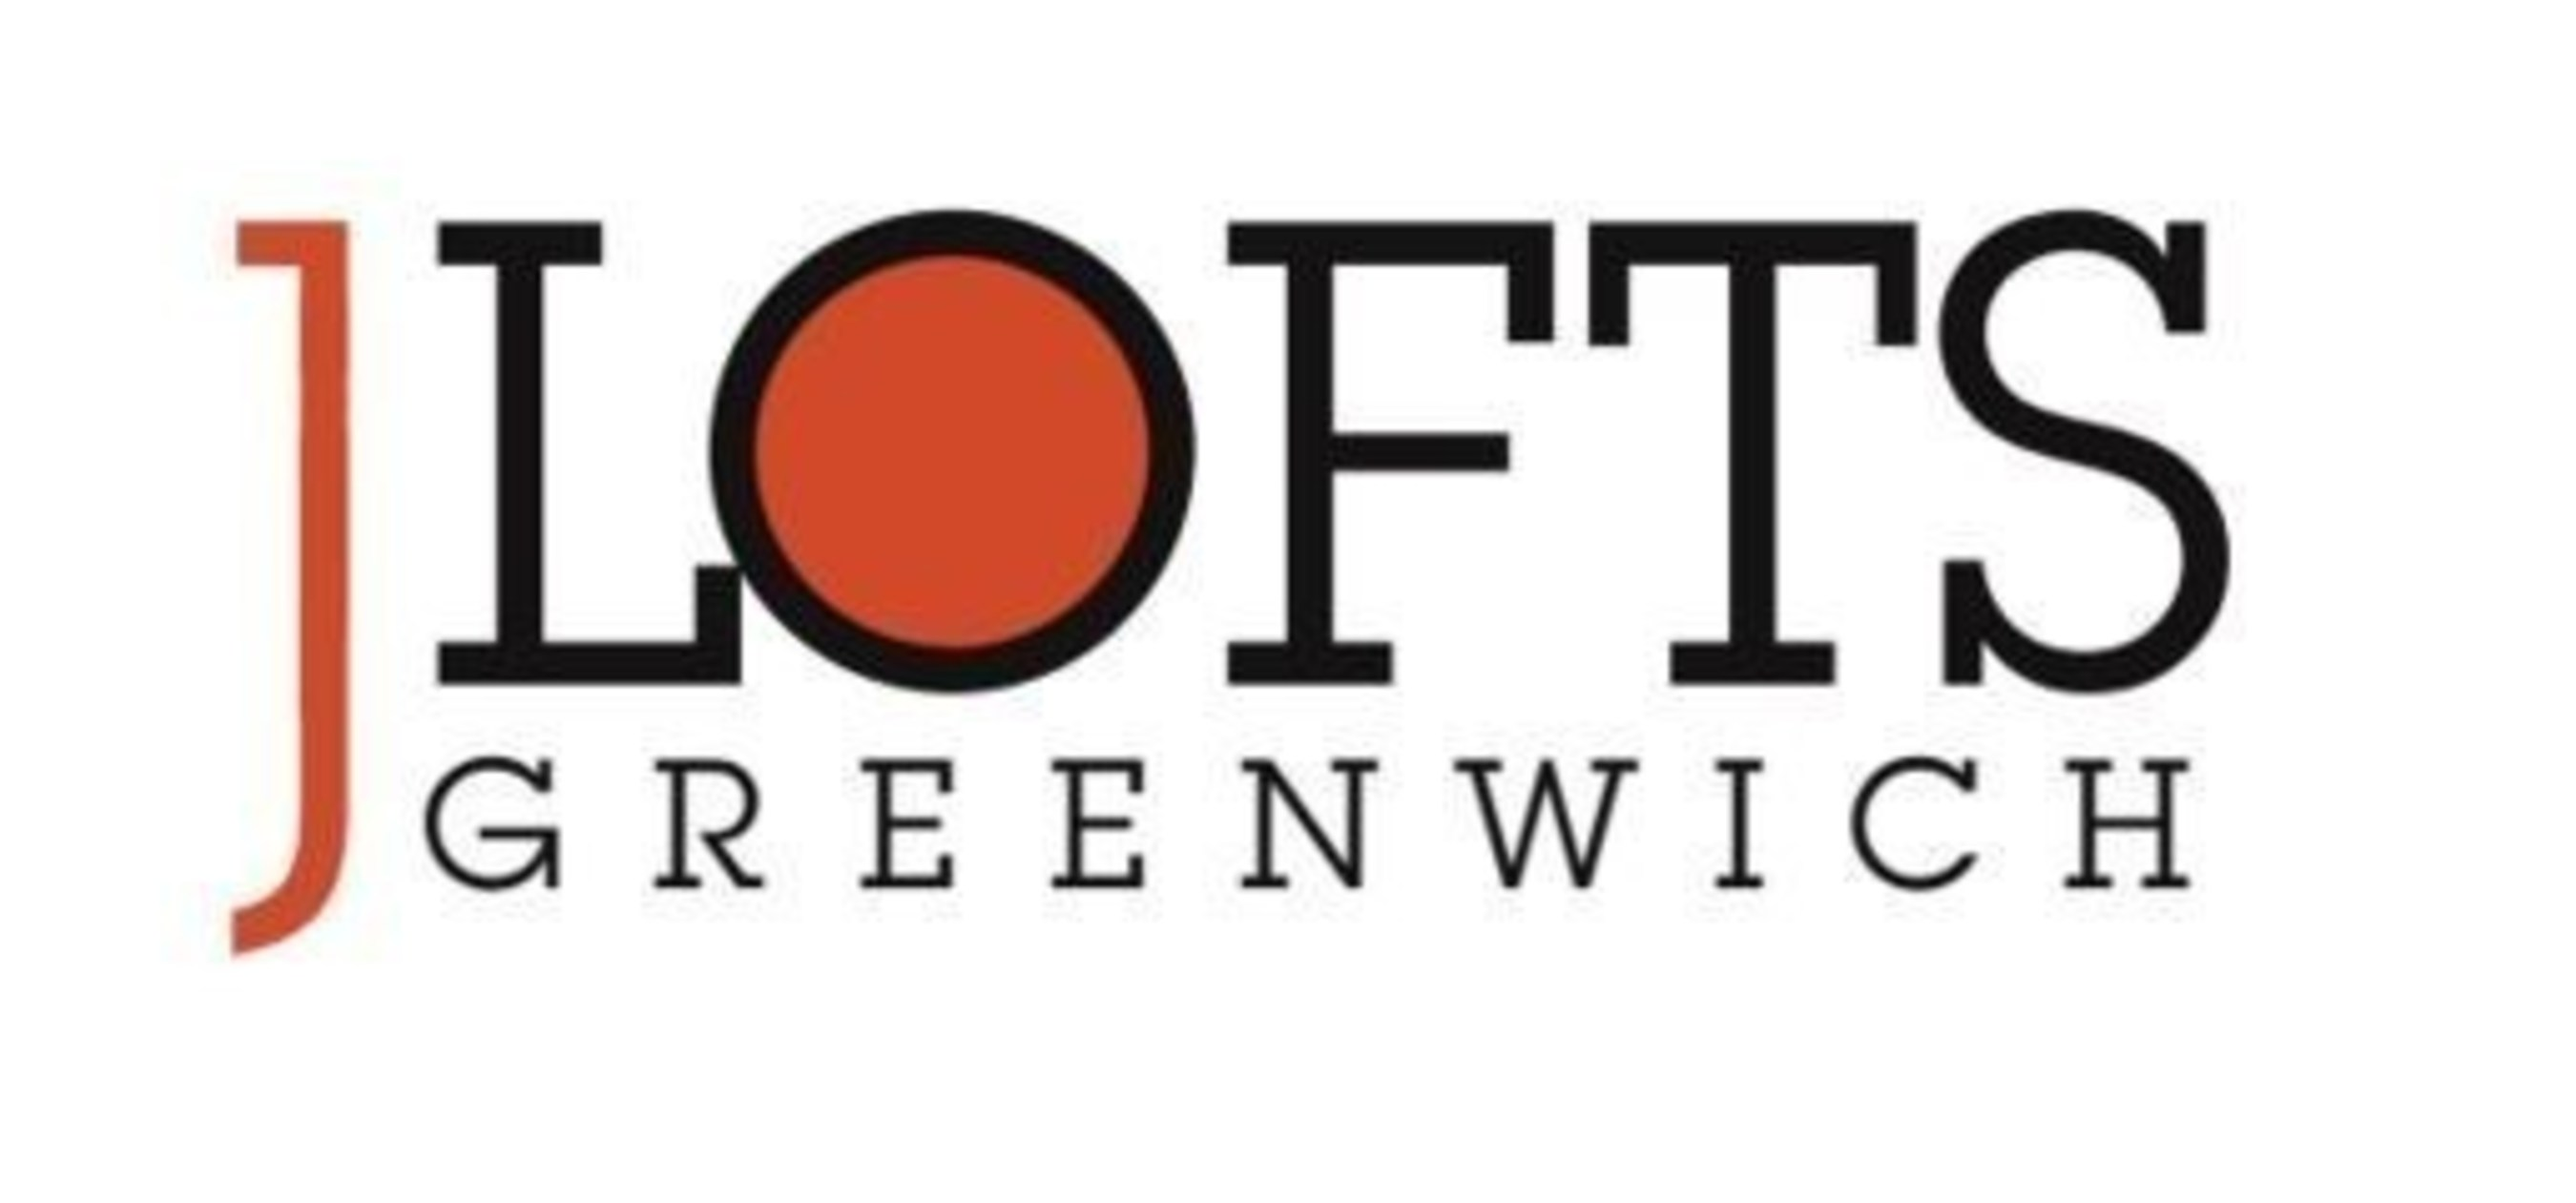 JLofts Greenwich Discusses the Modern, Loft-Like Design of its Rental Apartments